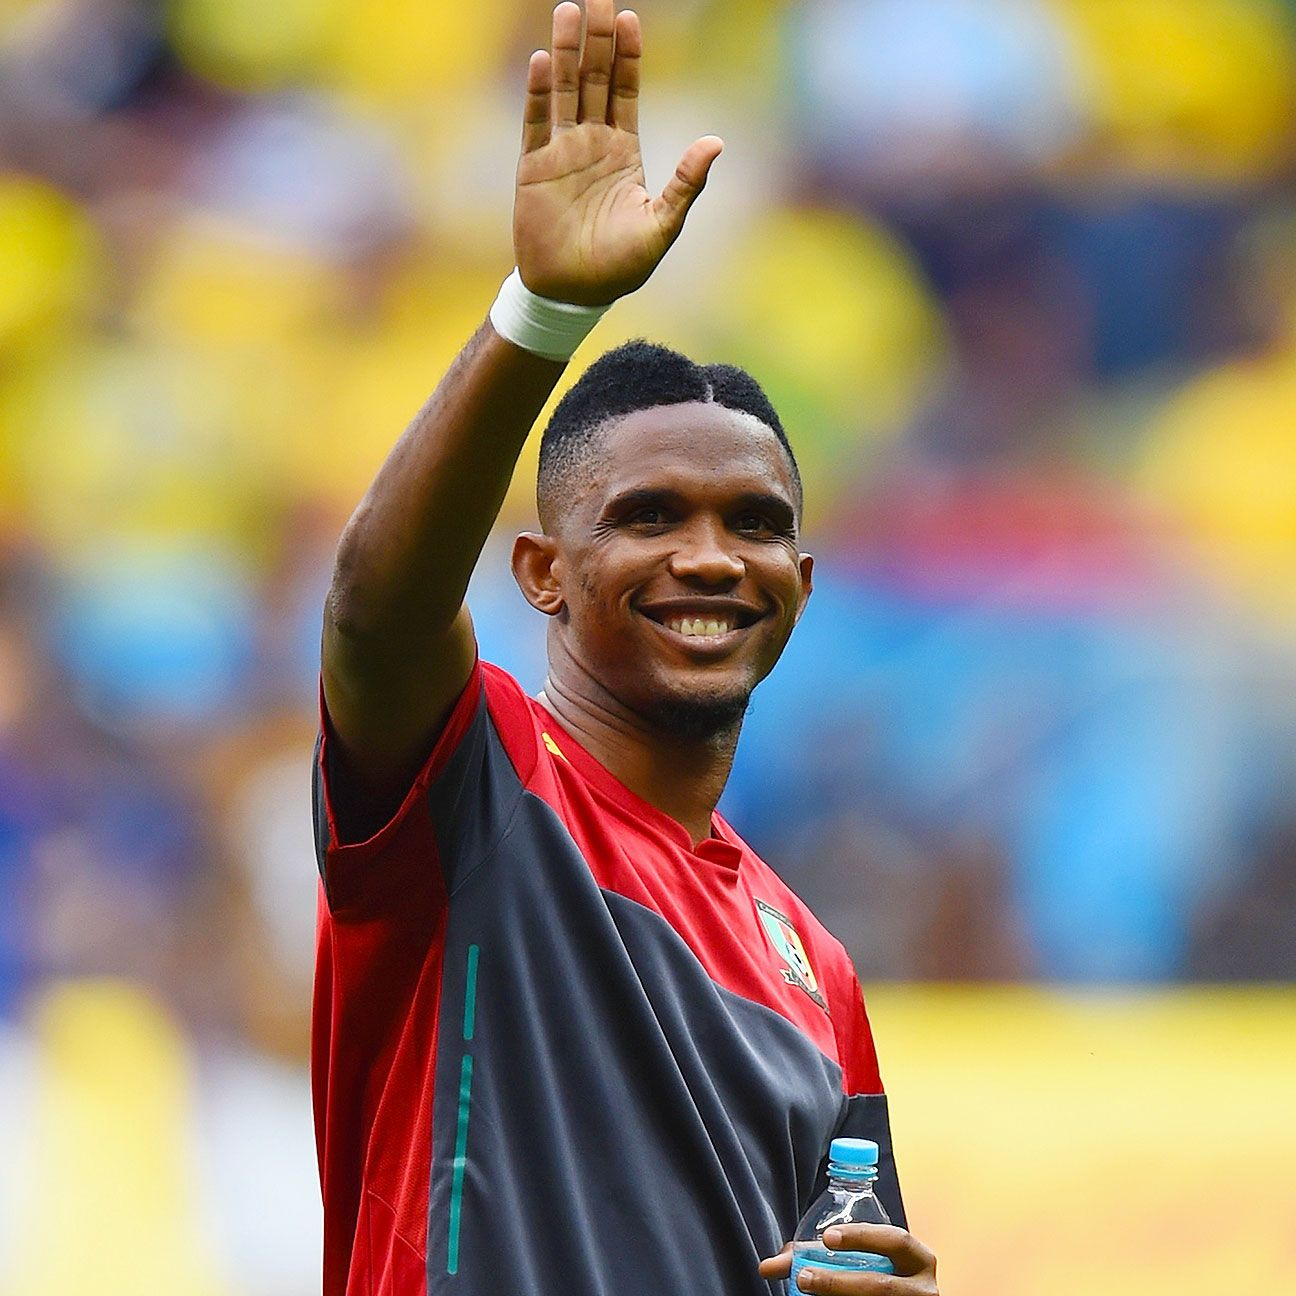 Samuel Eto'o made a new friend in Brazil during the World Cup.